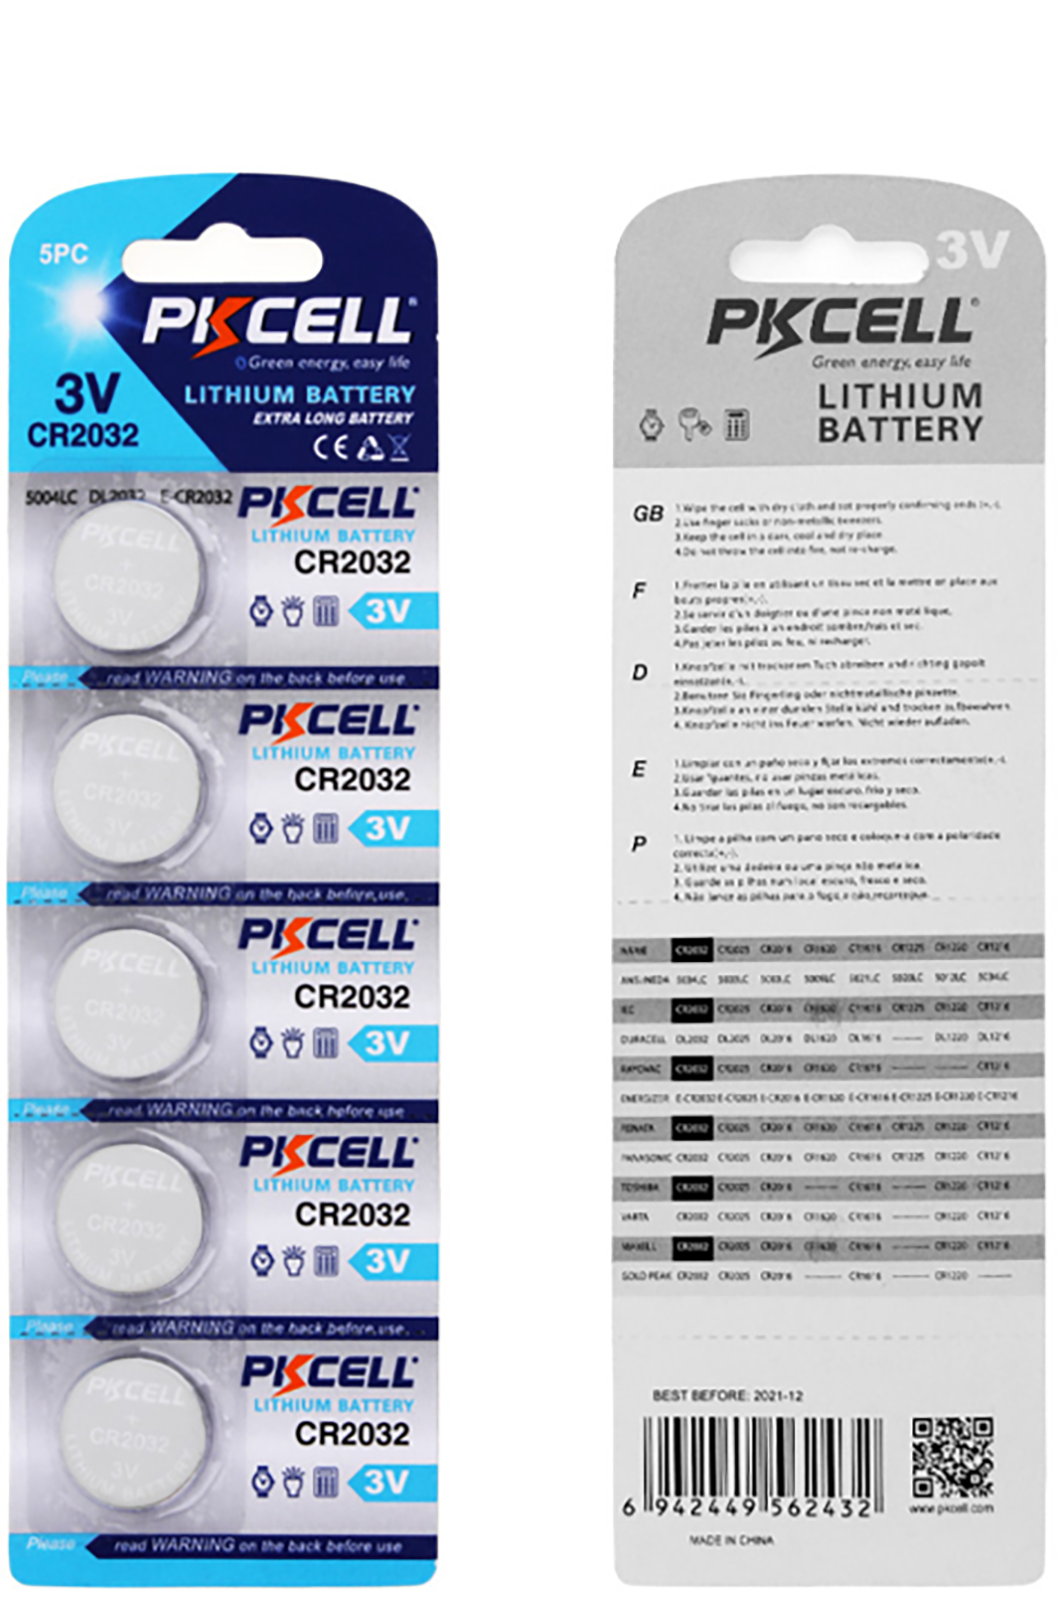 5 Brand New PKCELL CR2032 Button Cell 3v Lithium battery GENUINE EXPIRY 2023 2